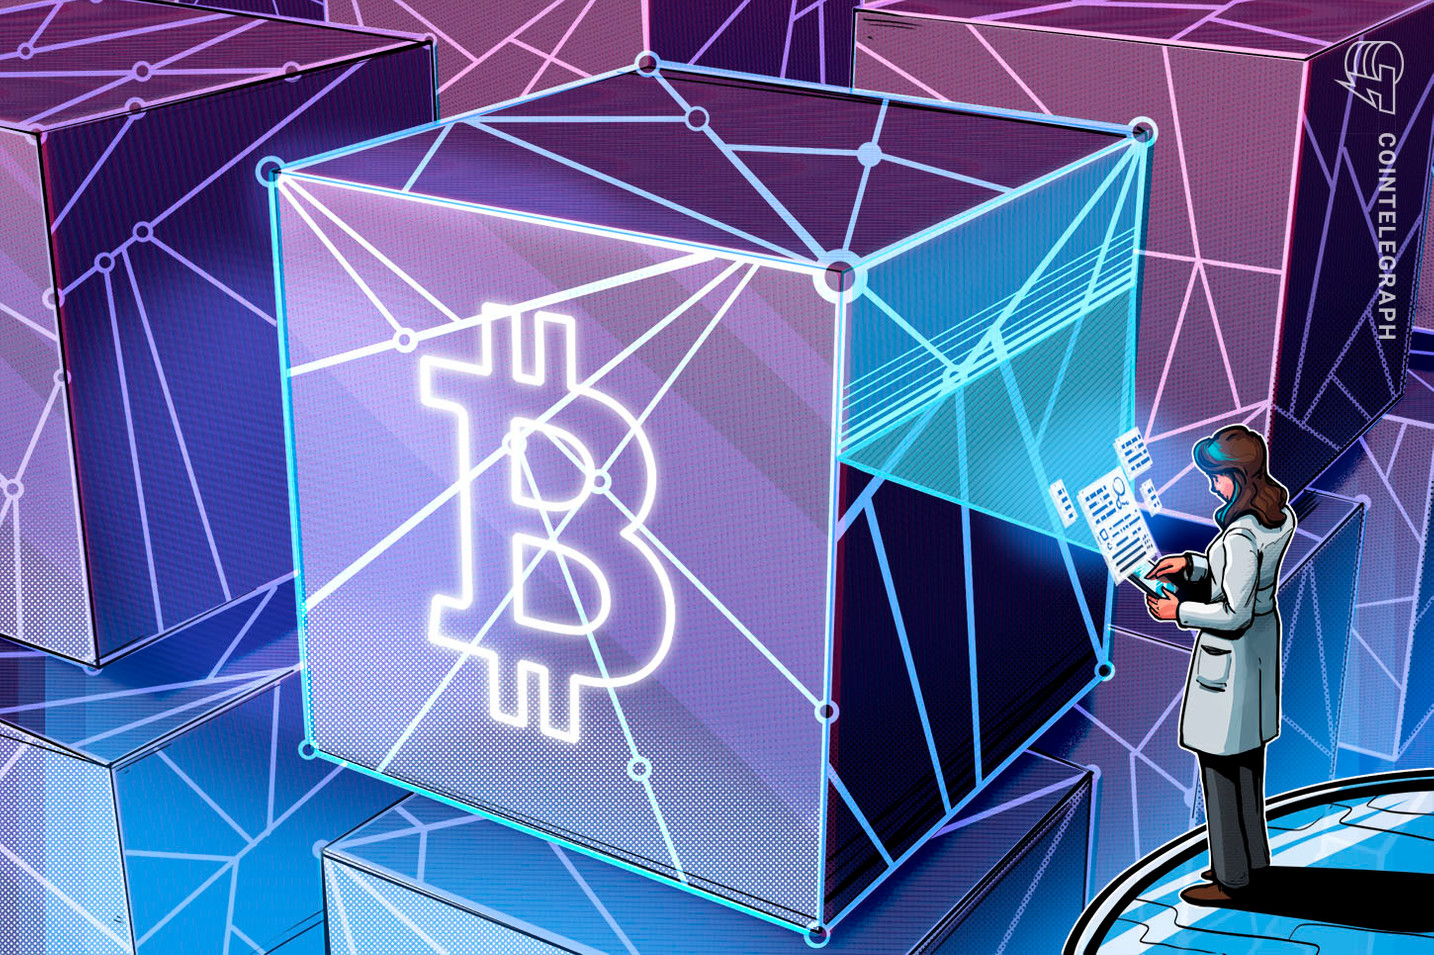 Bitcoin can scale on chain just fine as a store of value, Blockdaemon CEO suggests